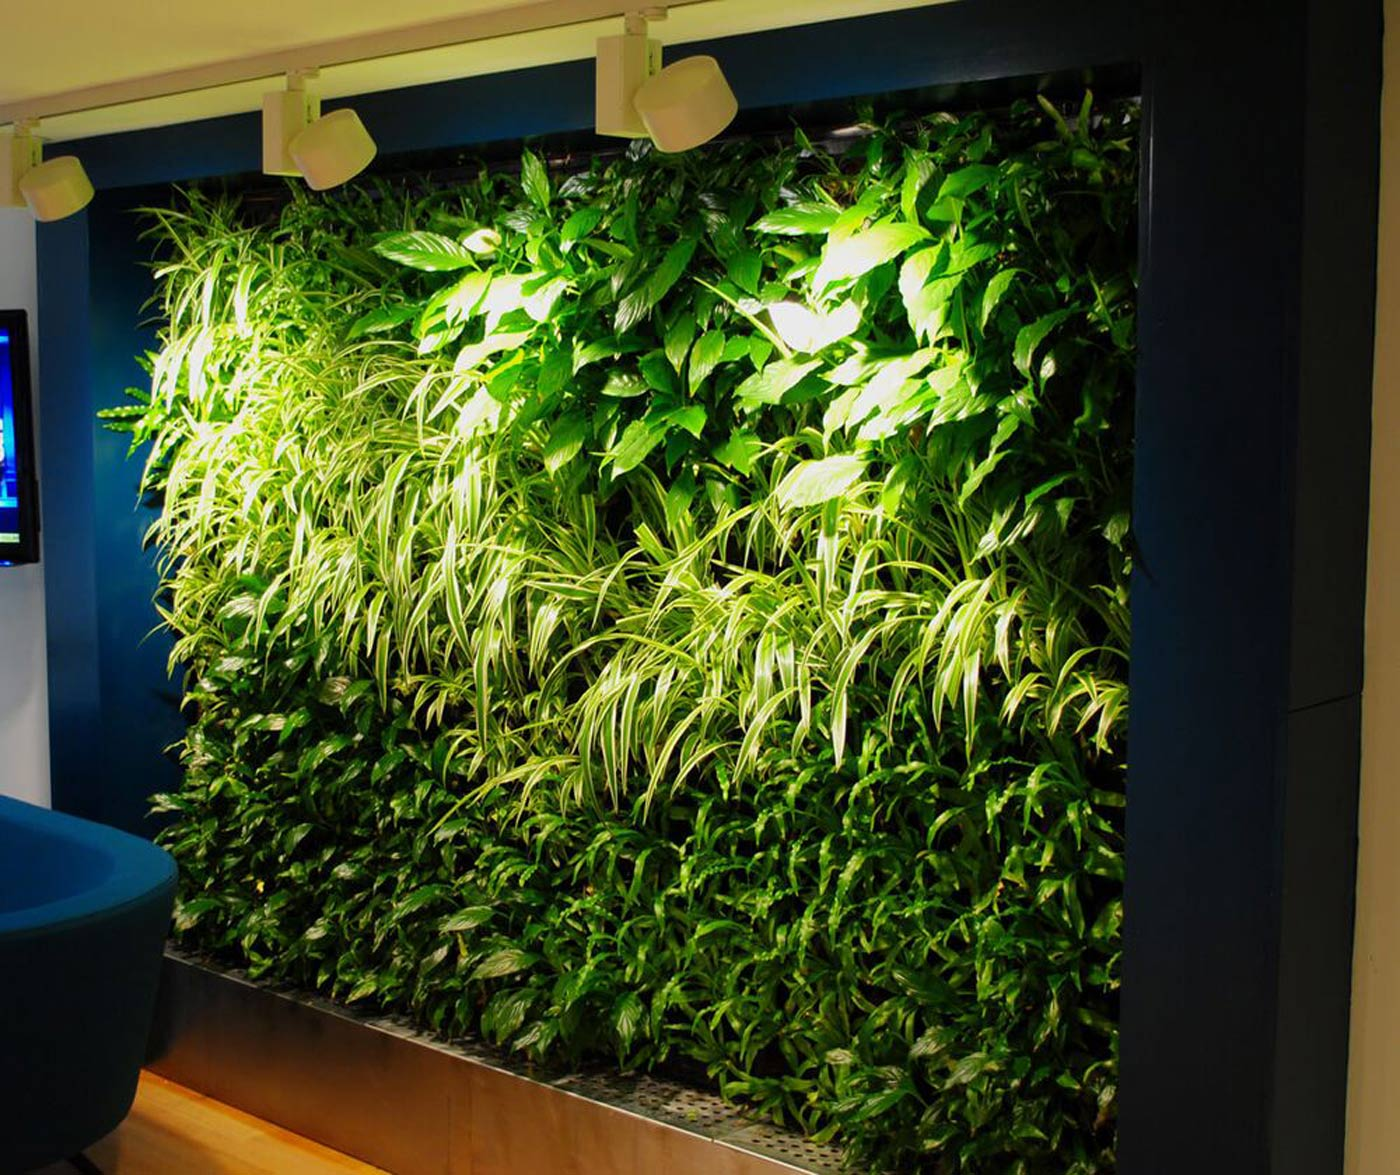 Images of green walls for offices office landscapes green walls with additional grow lighting improve the look of the wall help the plants mozeypictures Images